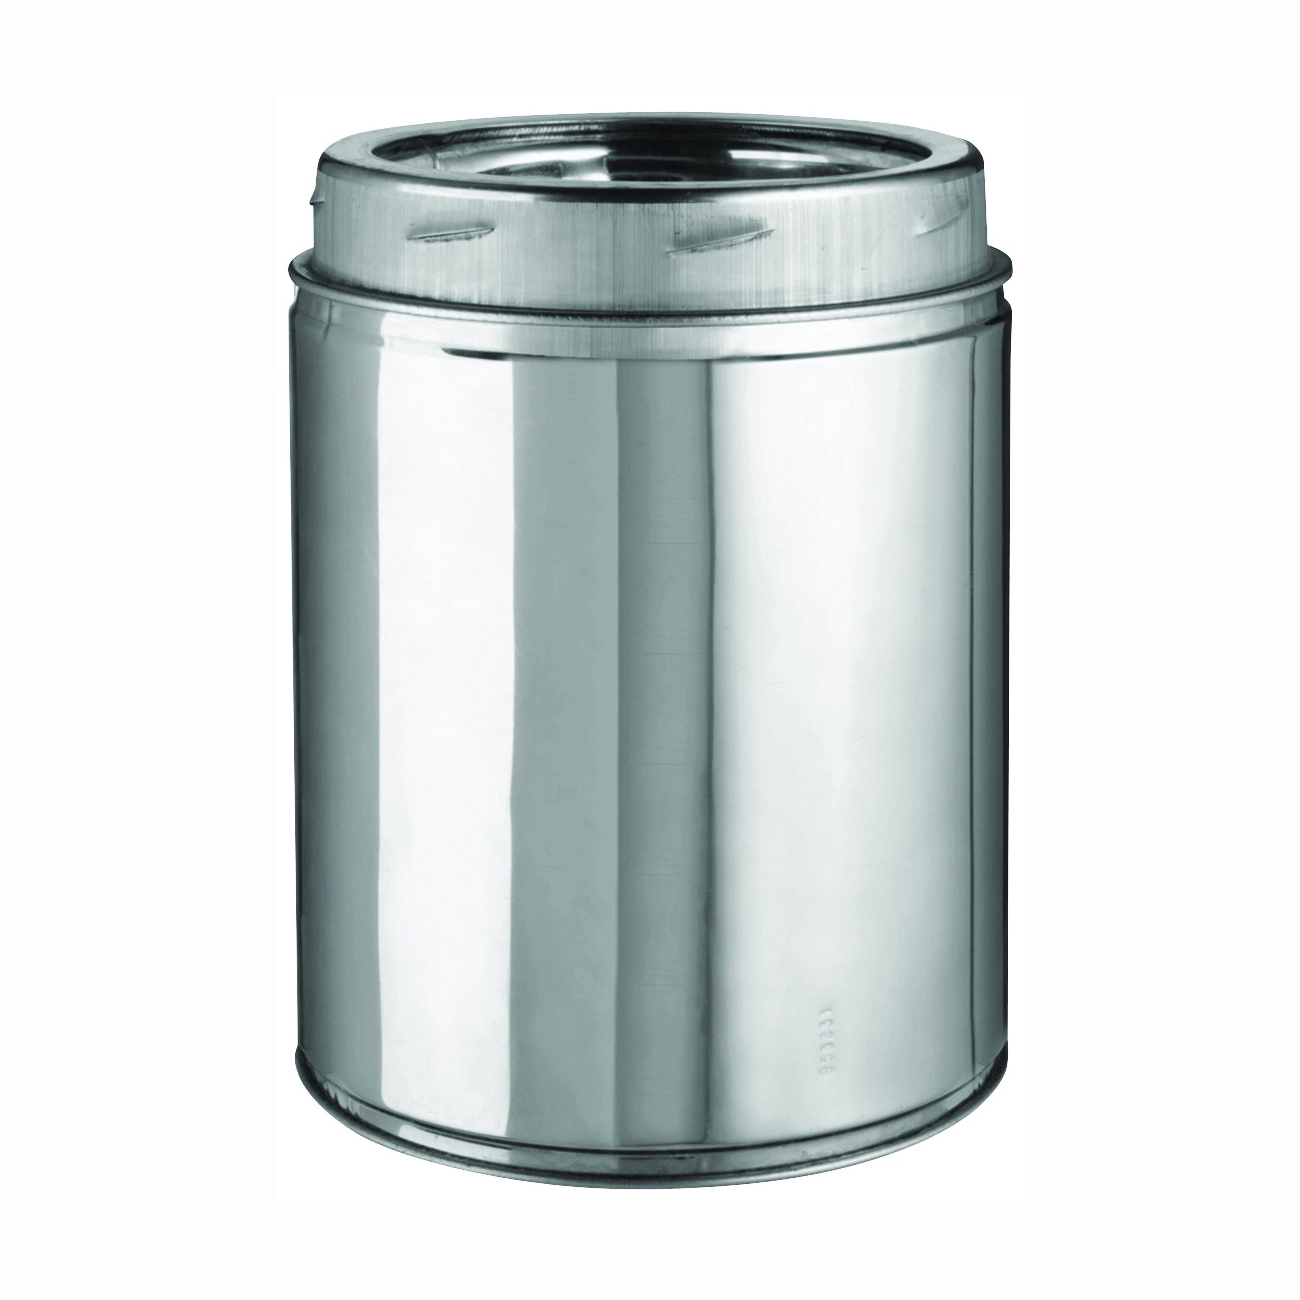 Picture of SELKIRK 206009 Chimney Pipe, 8 in OD, 9 in L, Stainless Steel